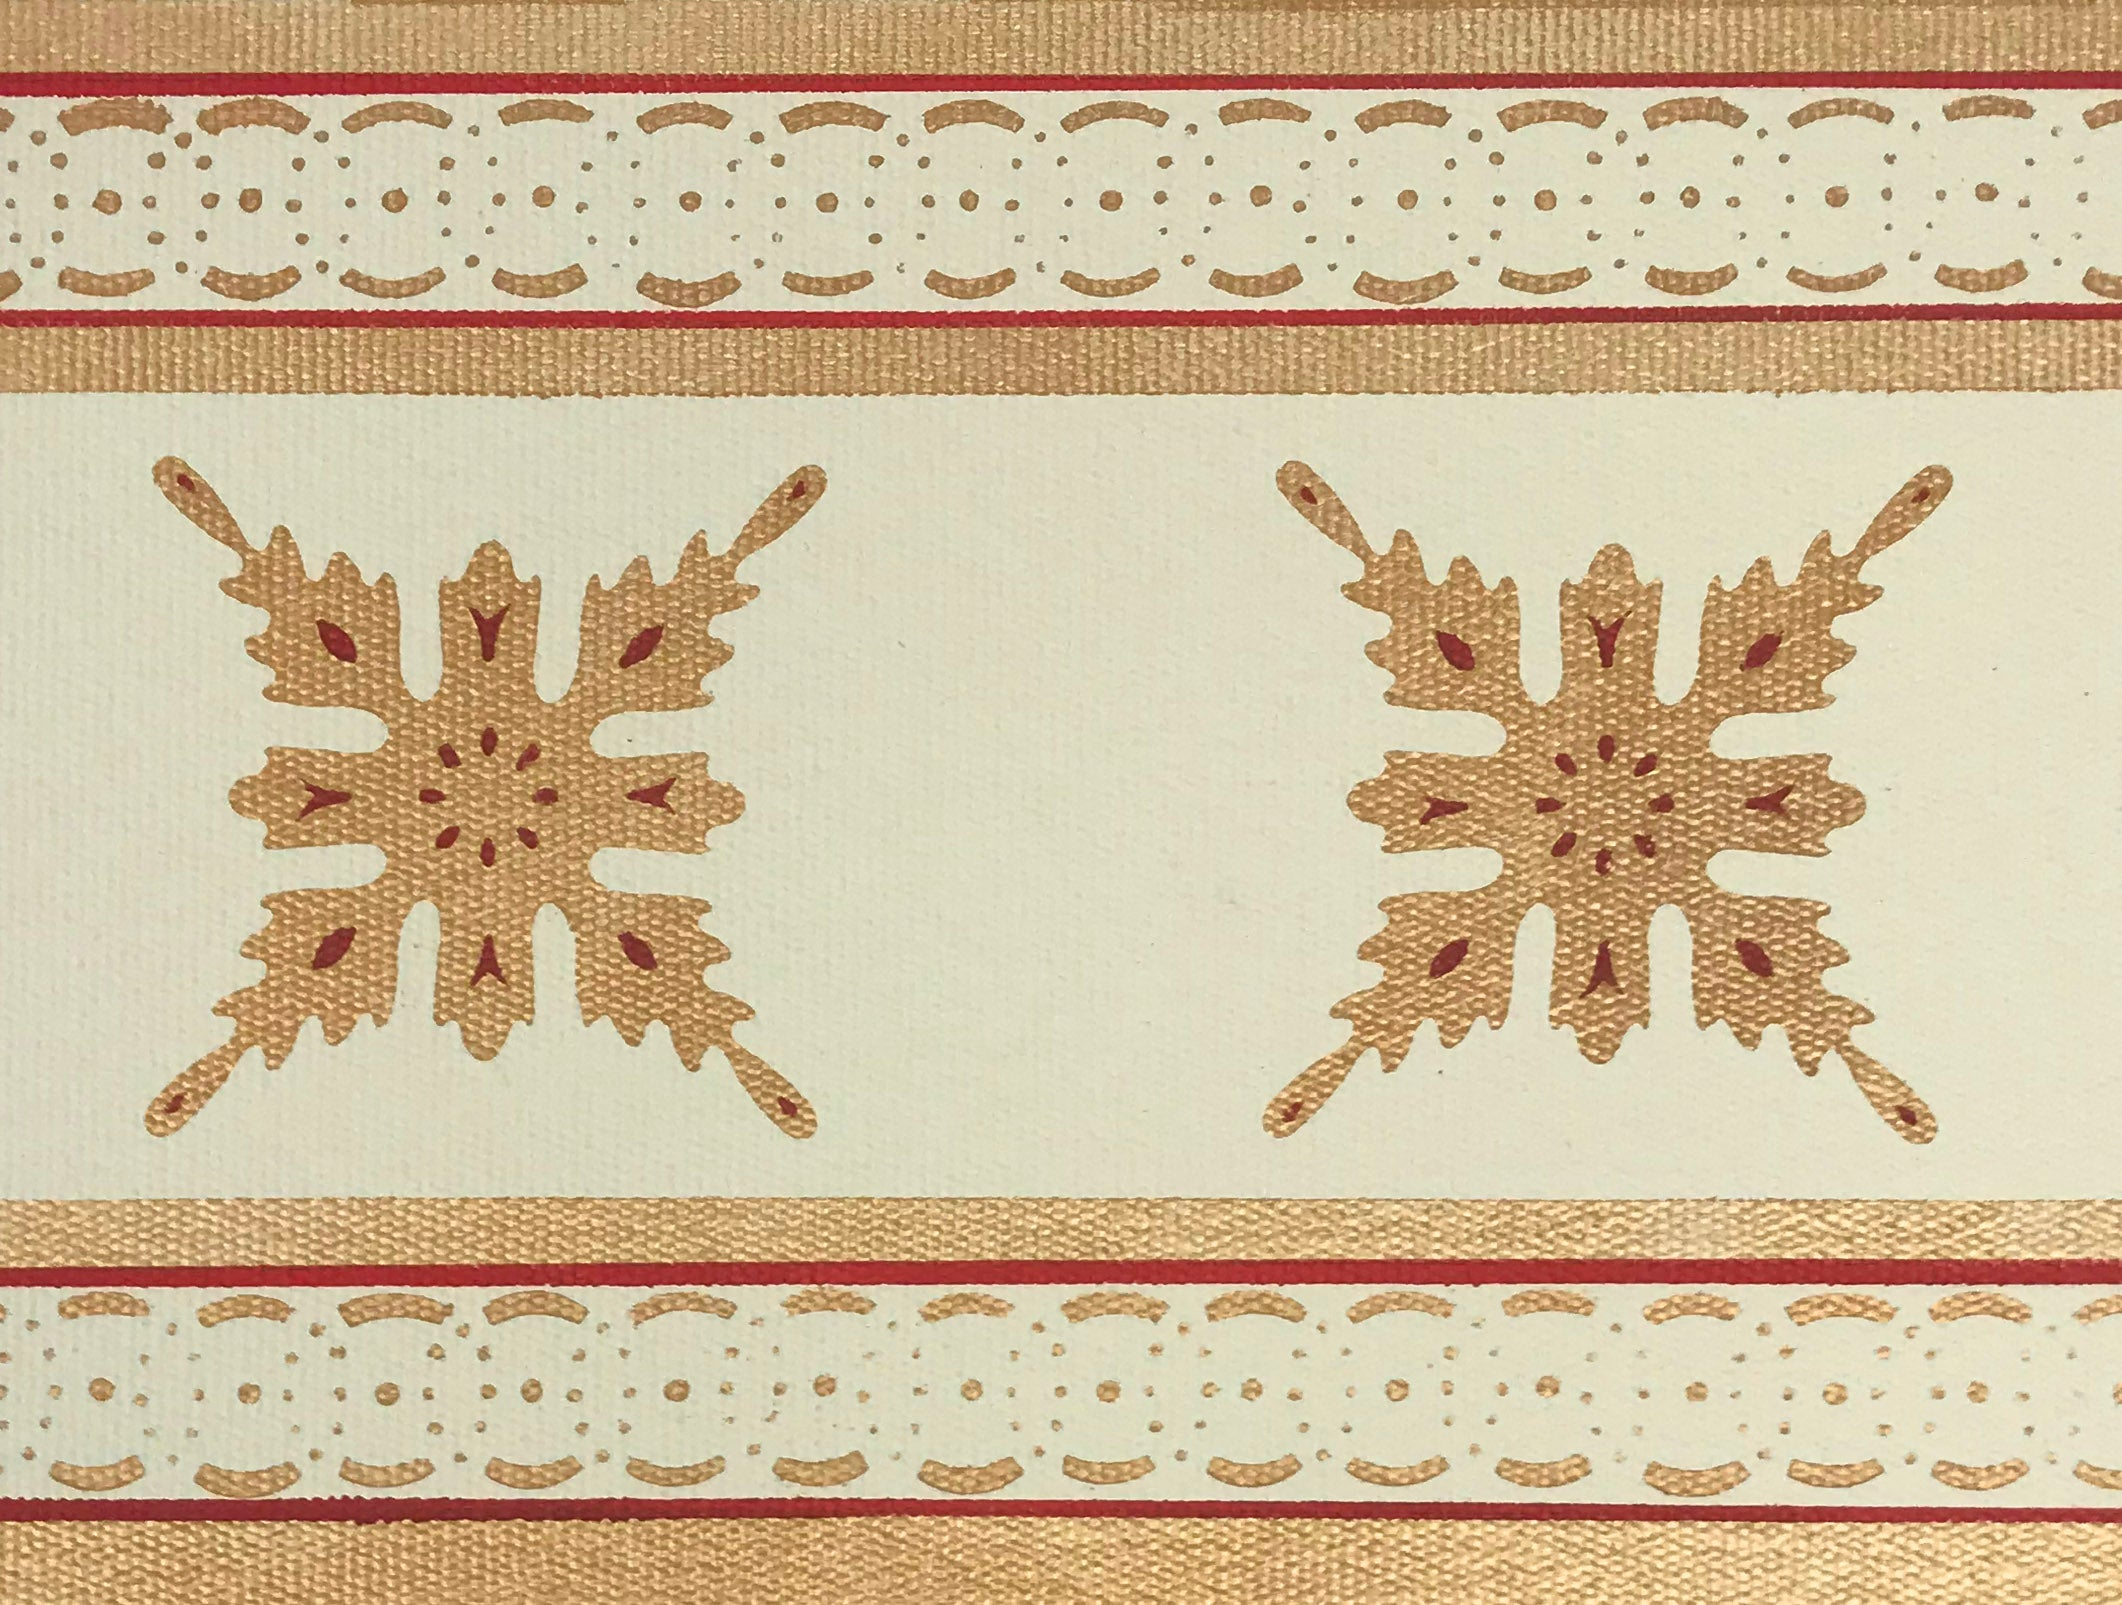 Close up of the border of this floorcloth showing the border which is a combination of elements from the interior motifs, lines and a complimentary circle and dot pattern.